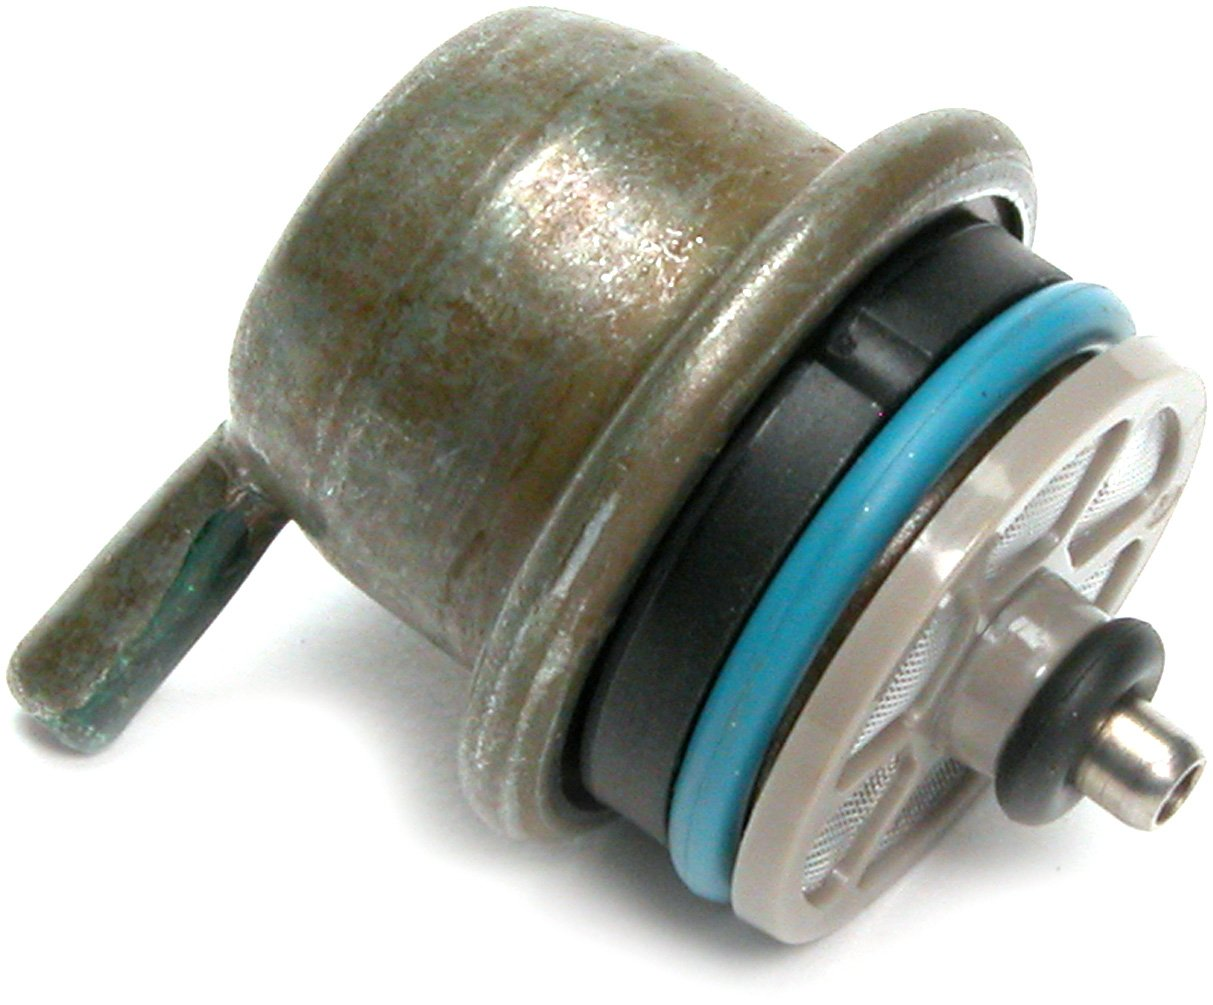 Delphi FP10016 Fuel Injection Pressure Regulator